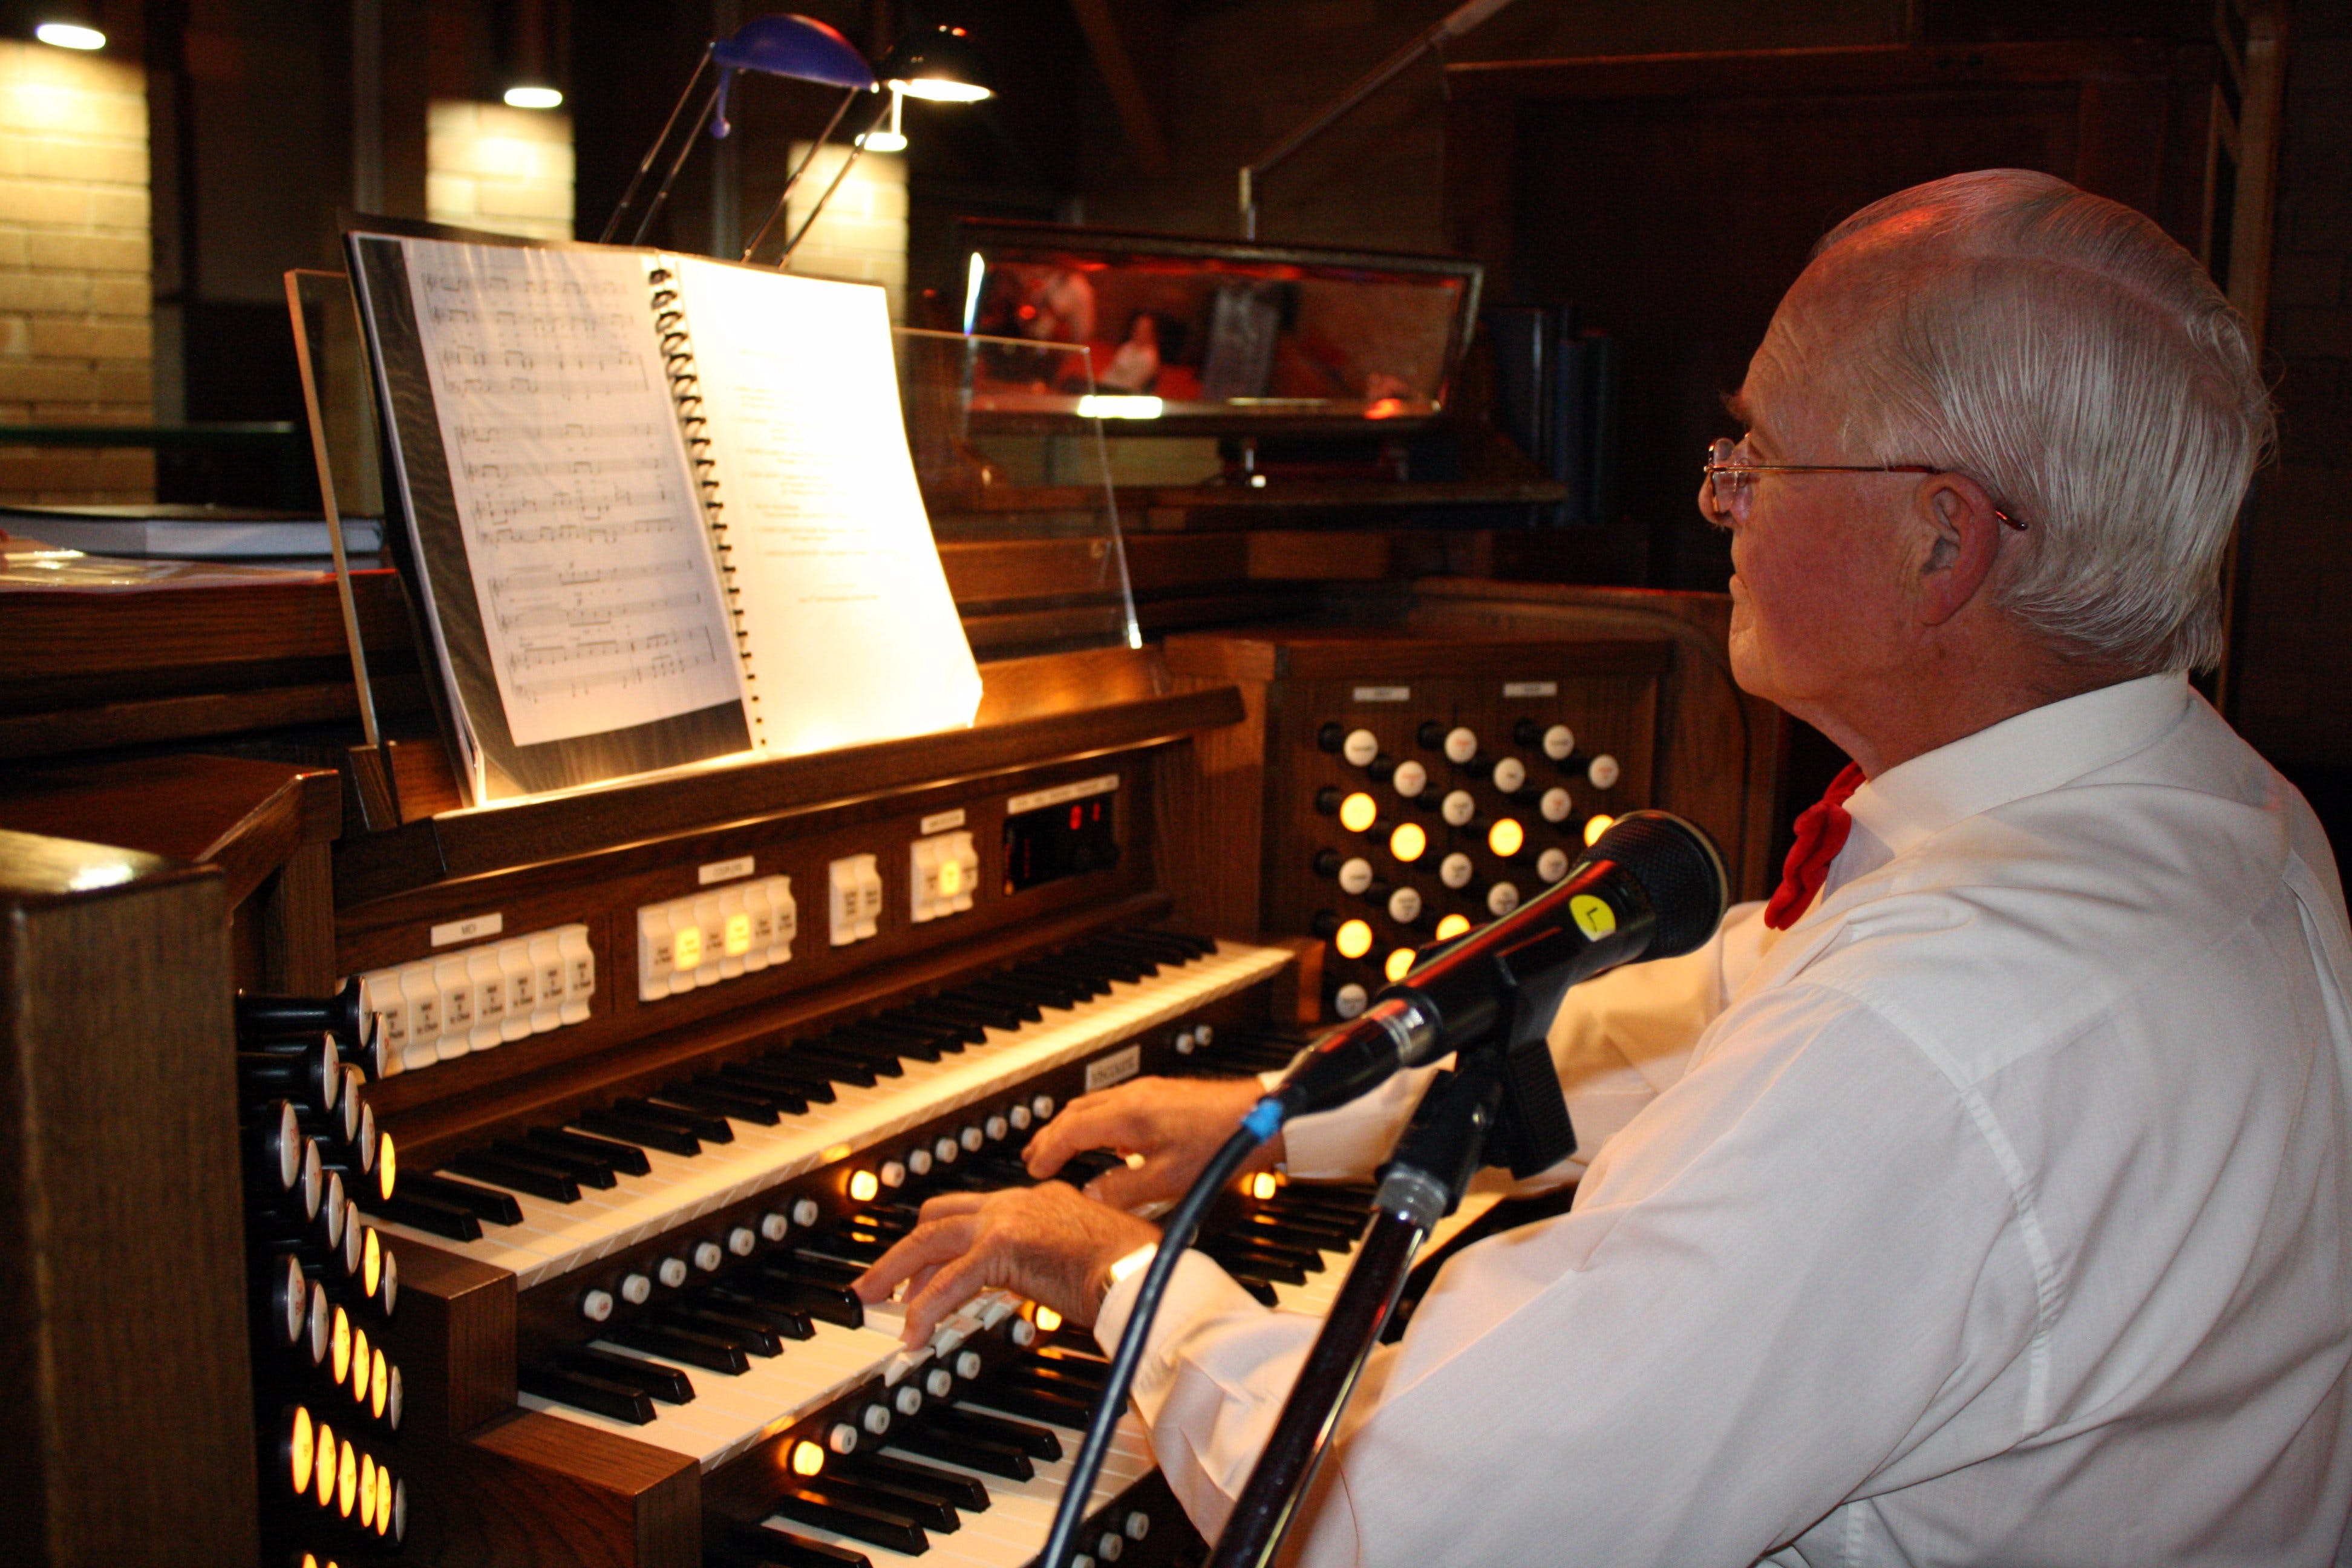 St Bartholomews Largest Digital Pipe Organ in the Southern Hemisphere - tourismnoosa.com